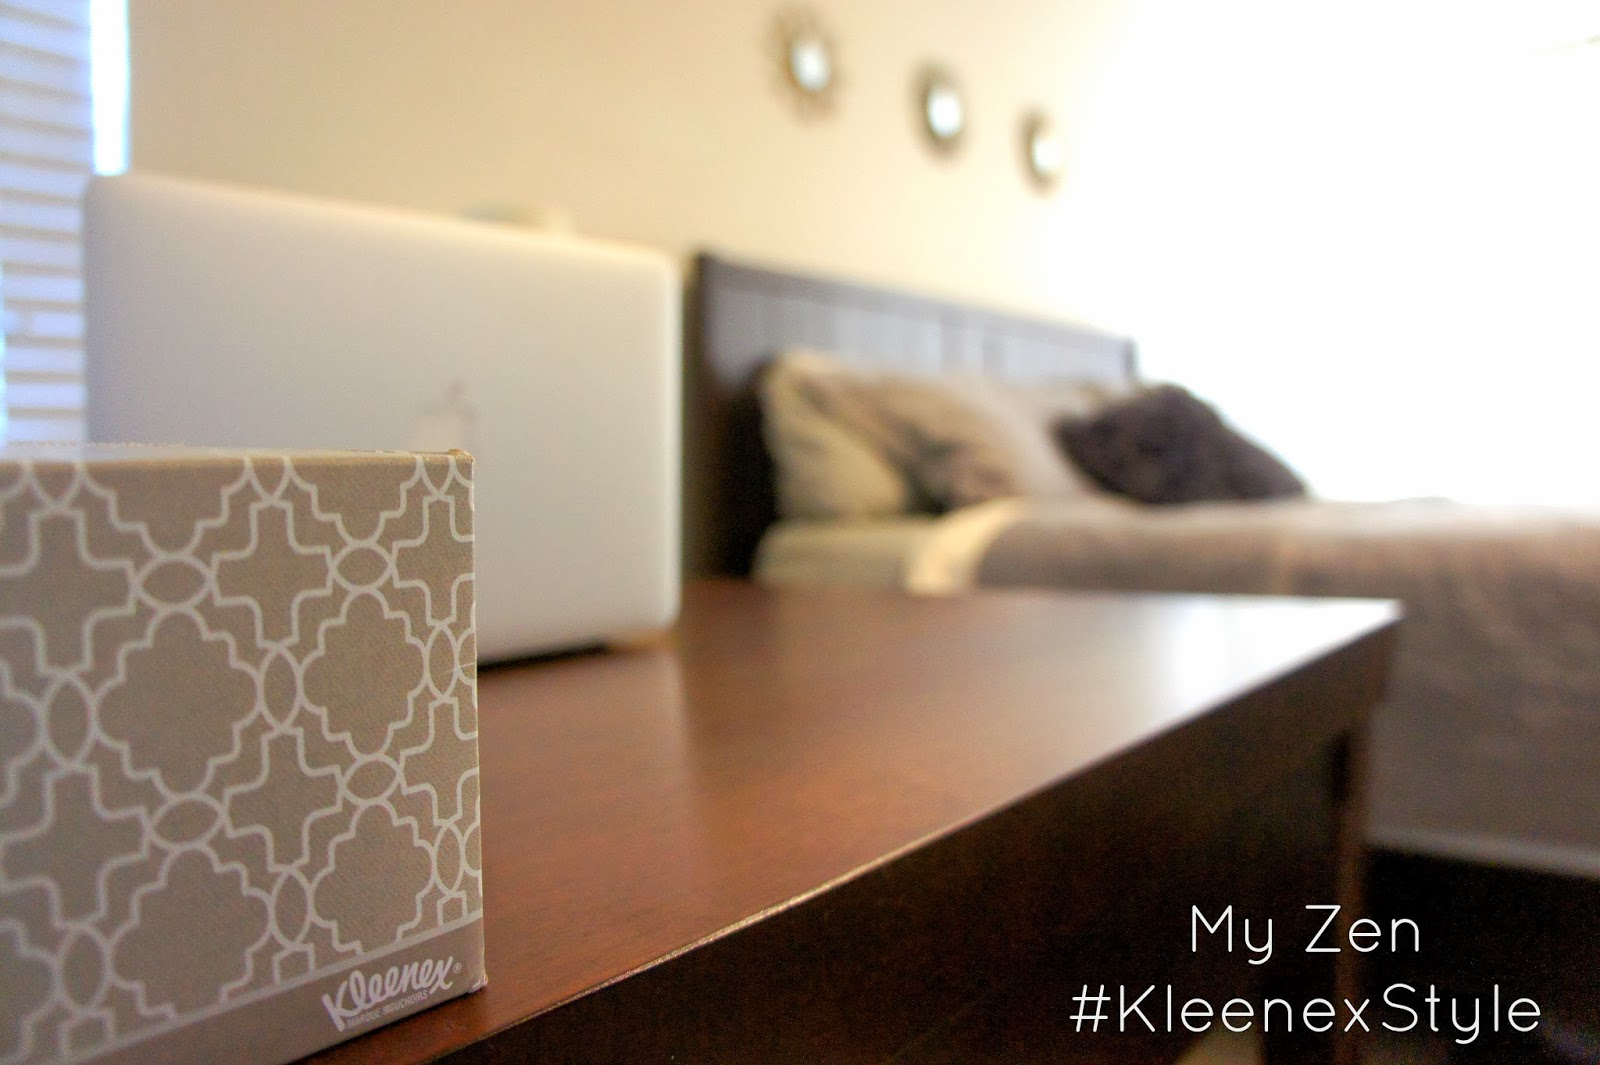 A Very Zen Bedroom with #KleenexStyle